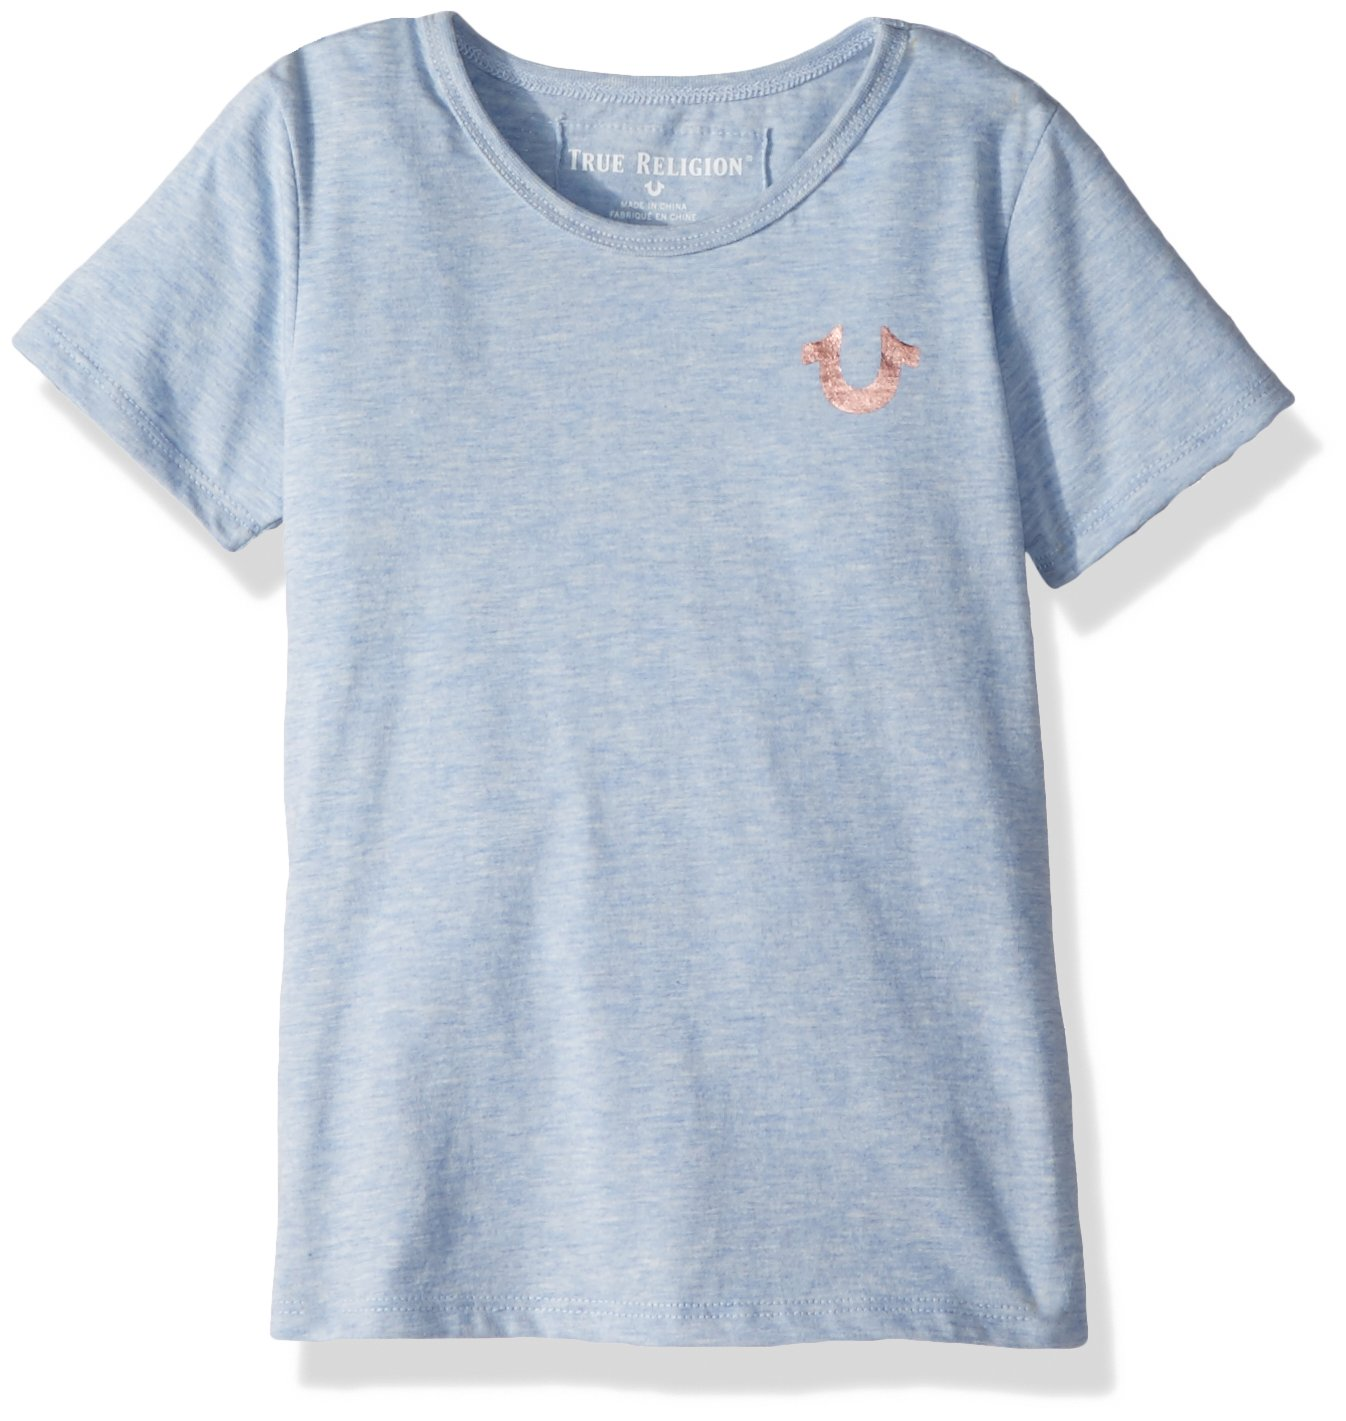 9fd026aa3 Galleon - True Religion Toddler Girls' Fashion Short Sleeve Tee Shirt,  Light Blue Heather, 2T